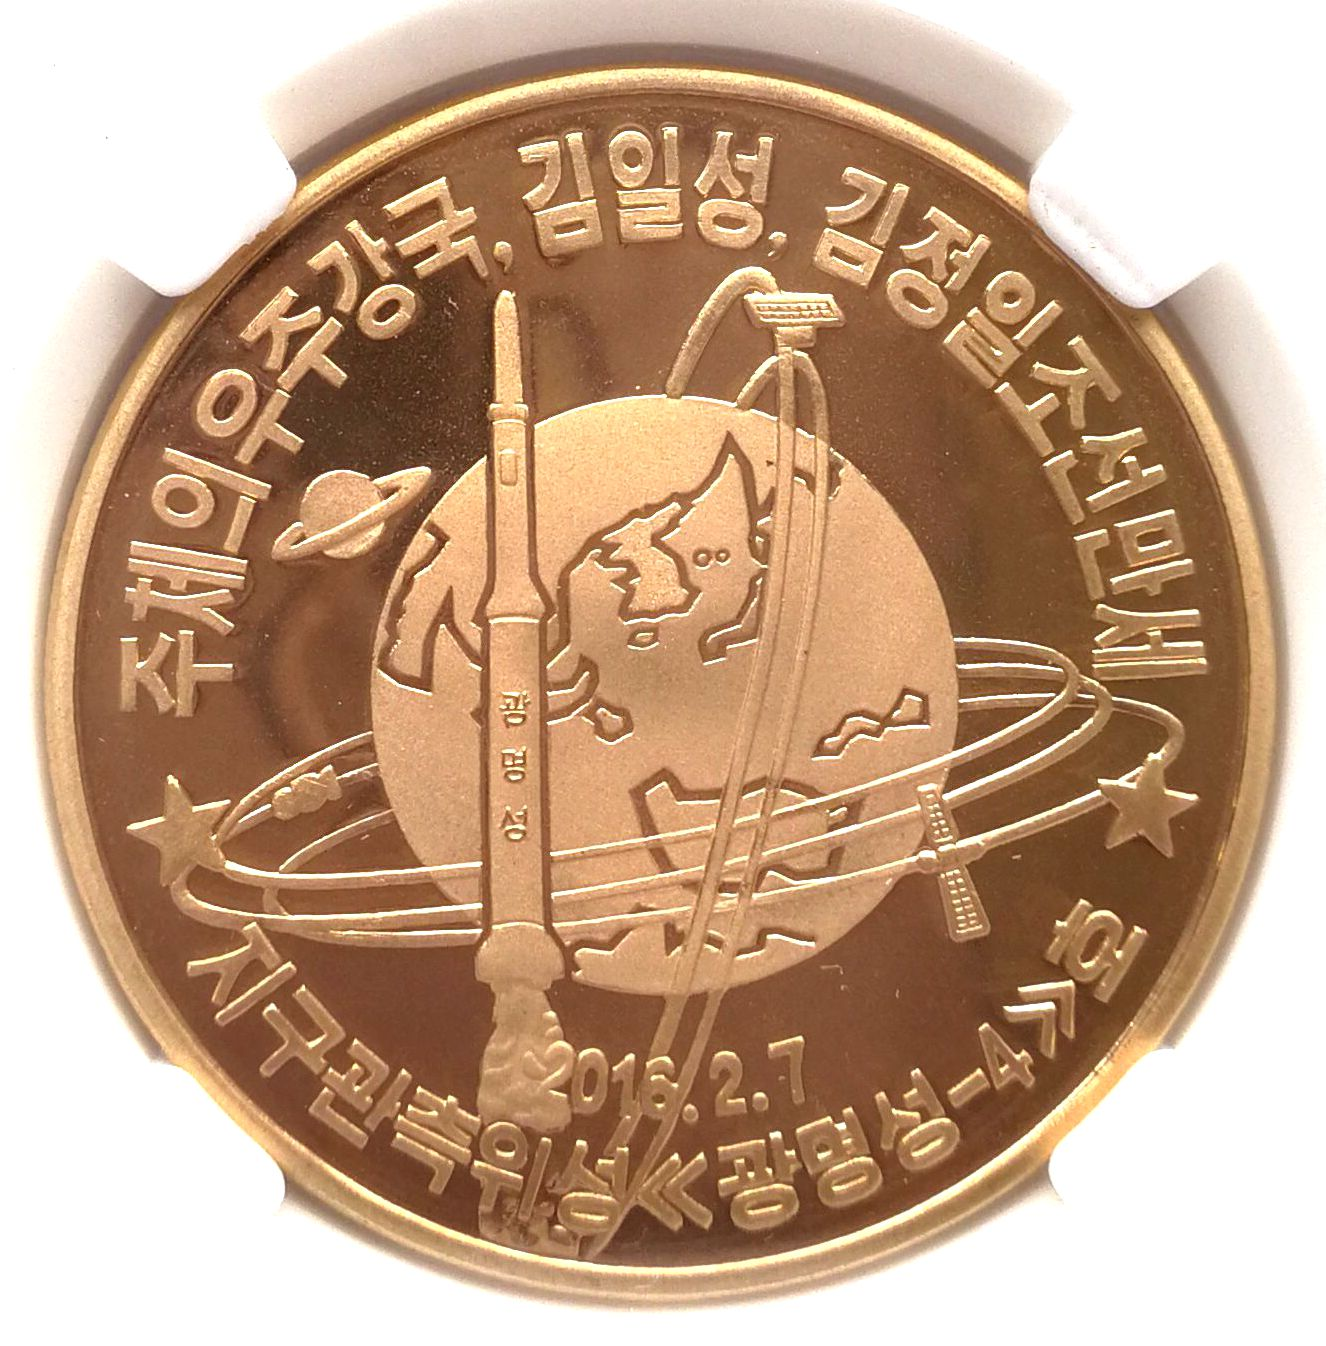 "L3306, Korea Proof Coin ""Kwangmyongsong-4 Rocket Missile"" 2016 Bronze, Korean Grade"